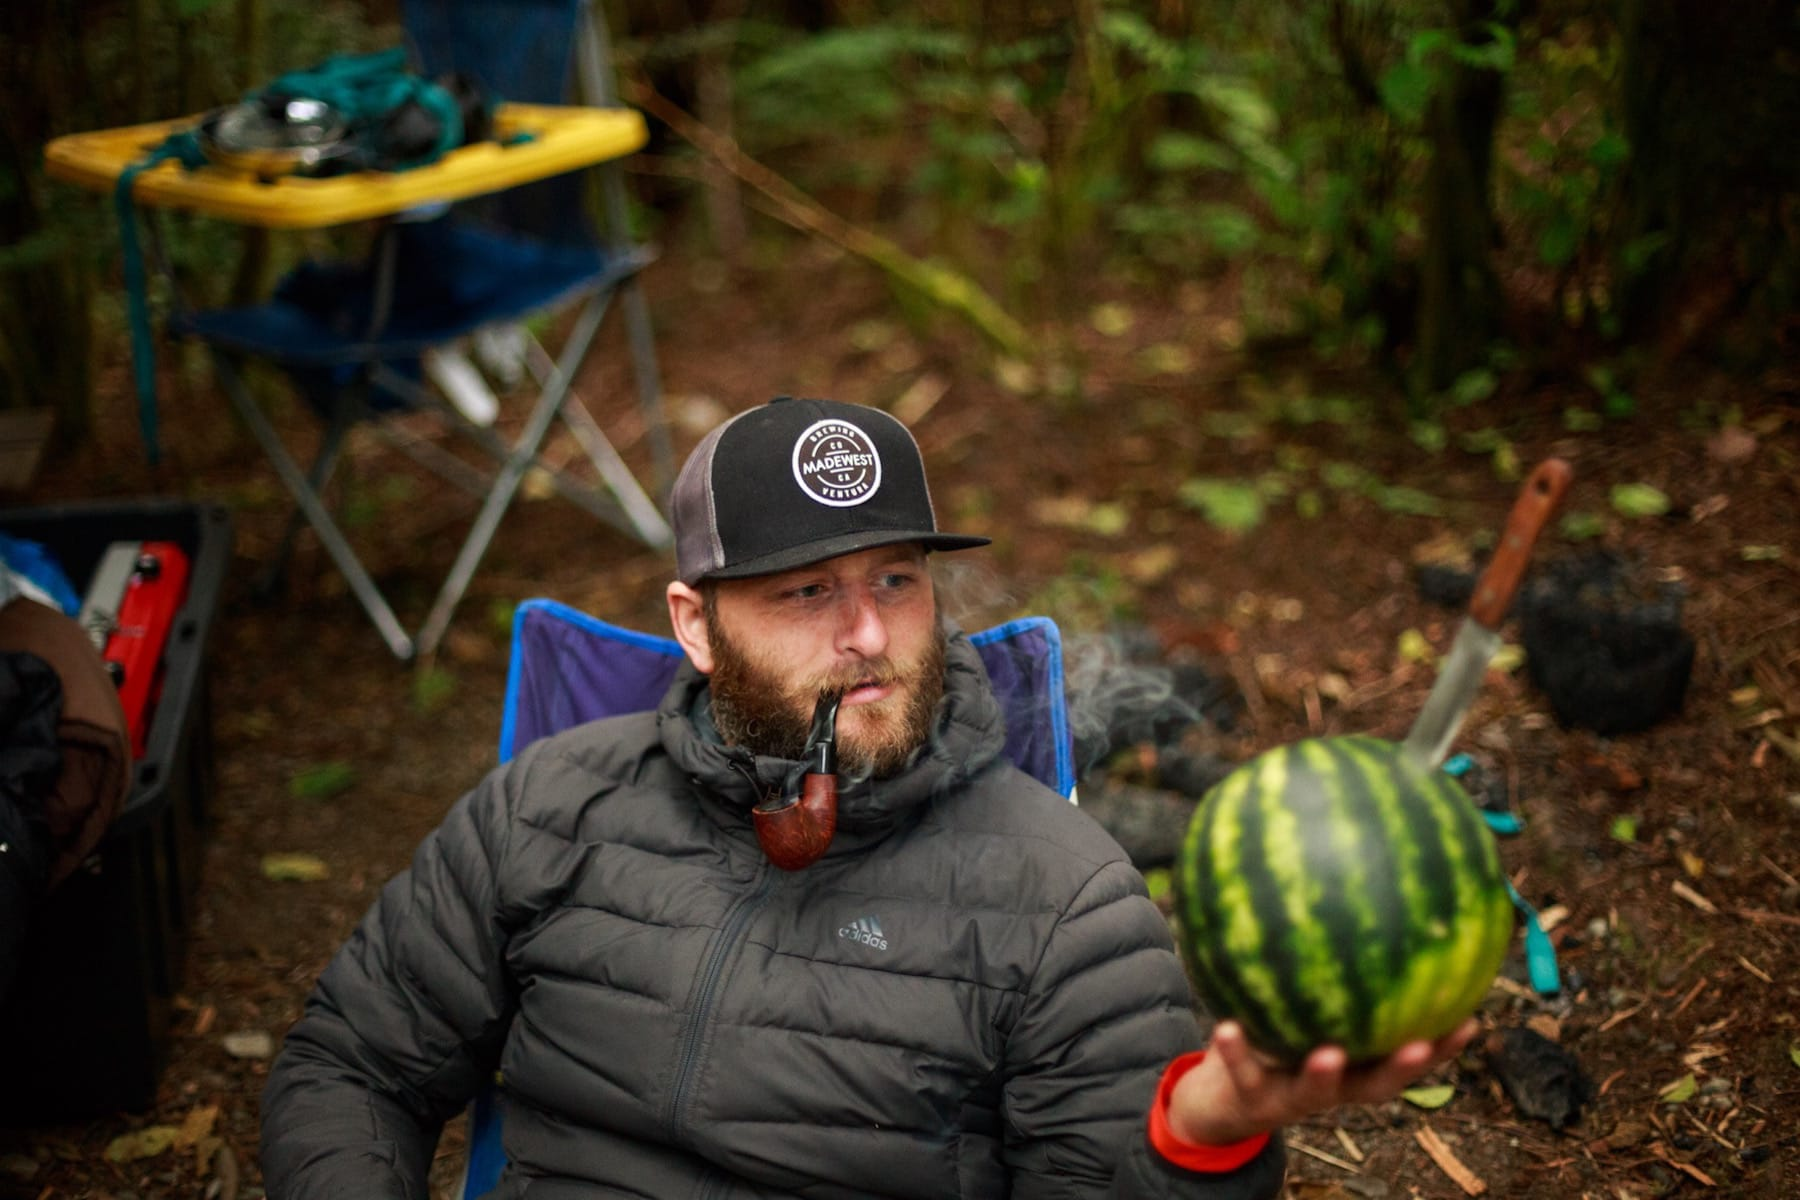 Camp life with a watermelon